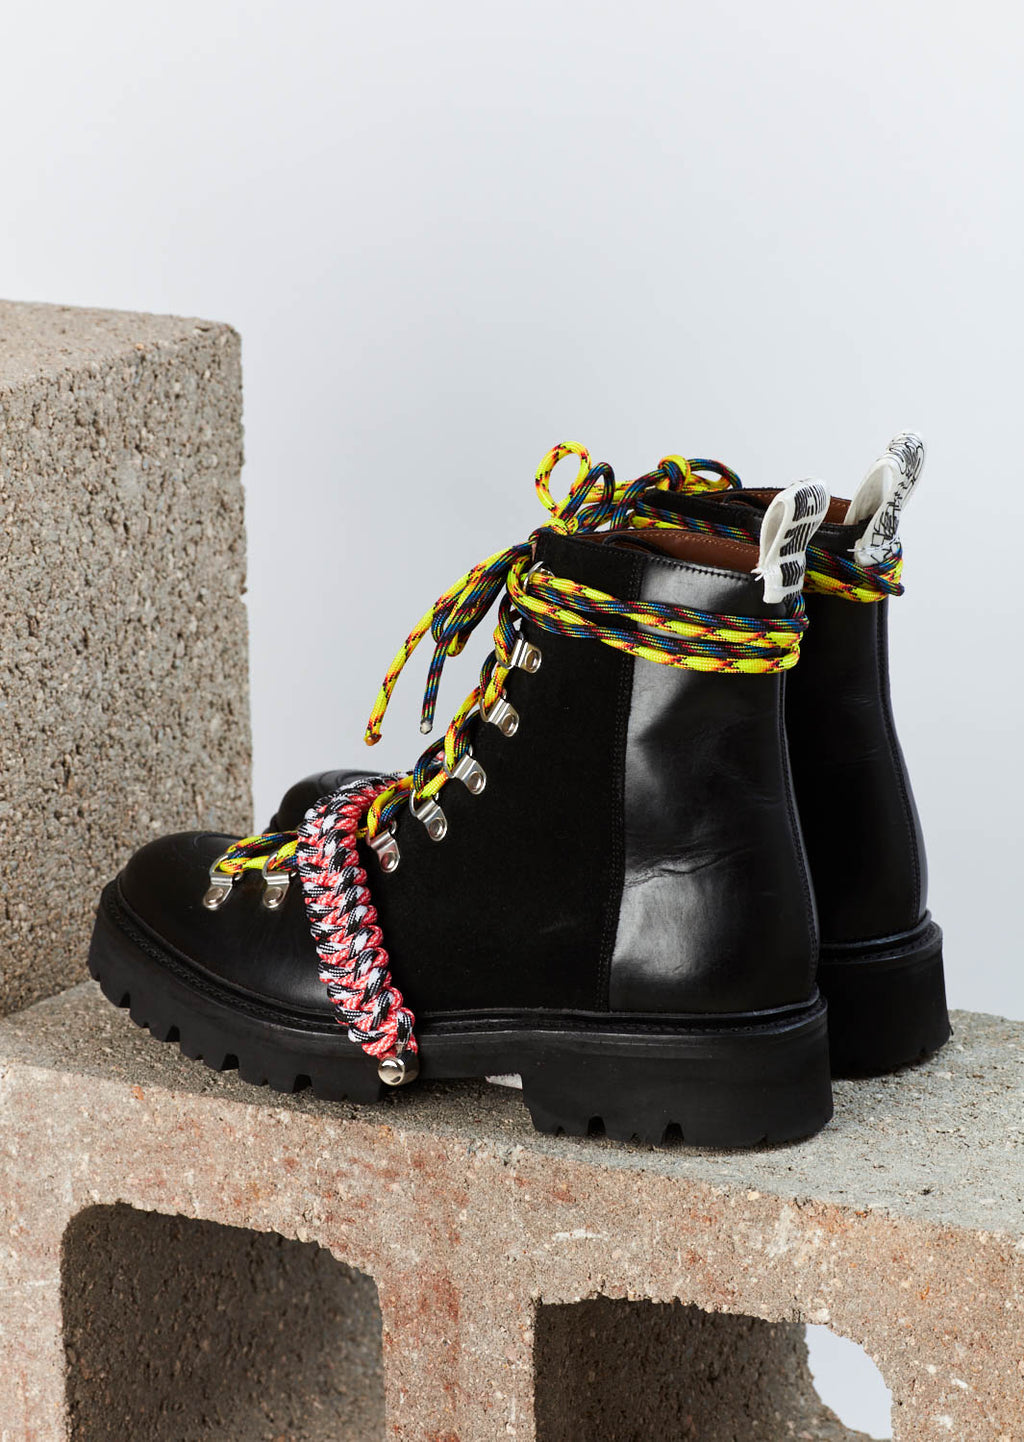 House of Holland x Grenson Hiking Boot (Black) by House of Holla